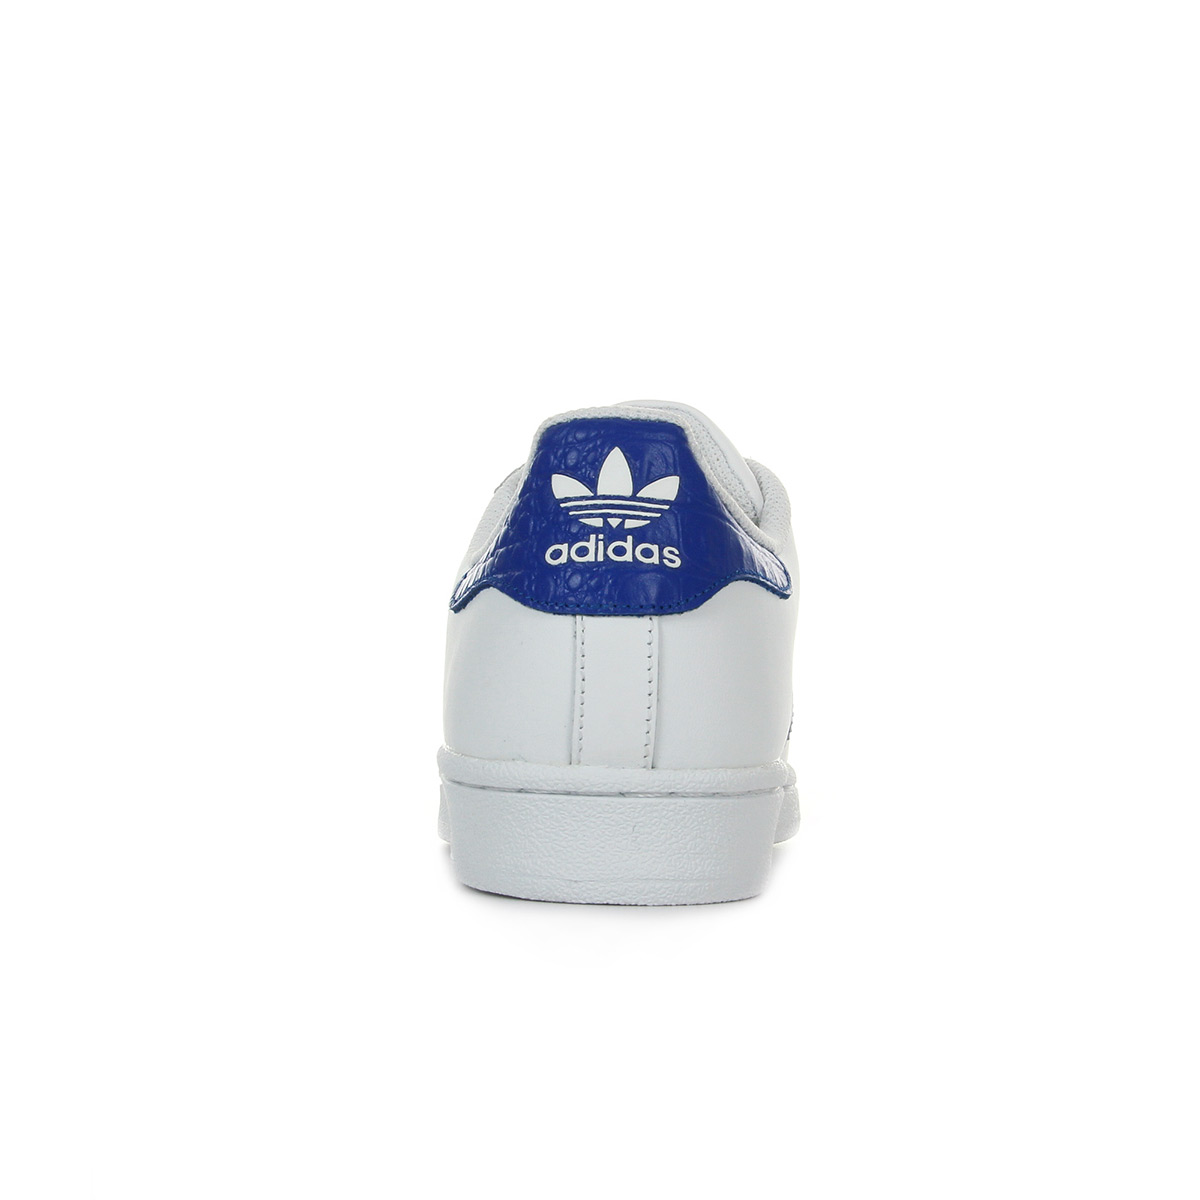 adidas Superstar BZ0363, Baskets mode femme